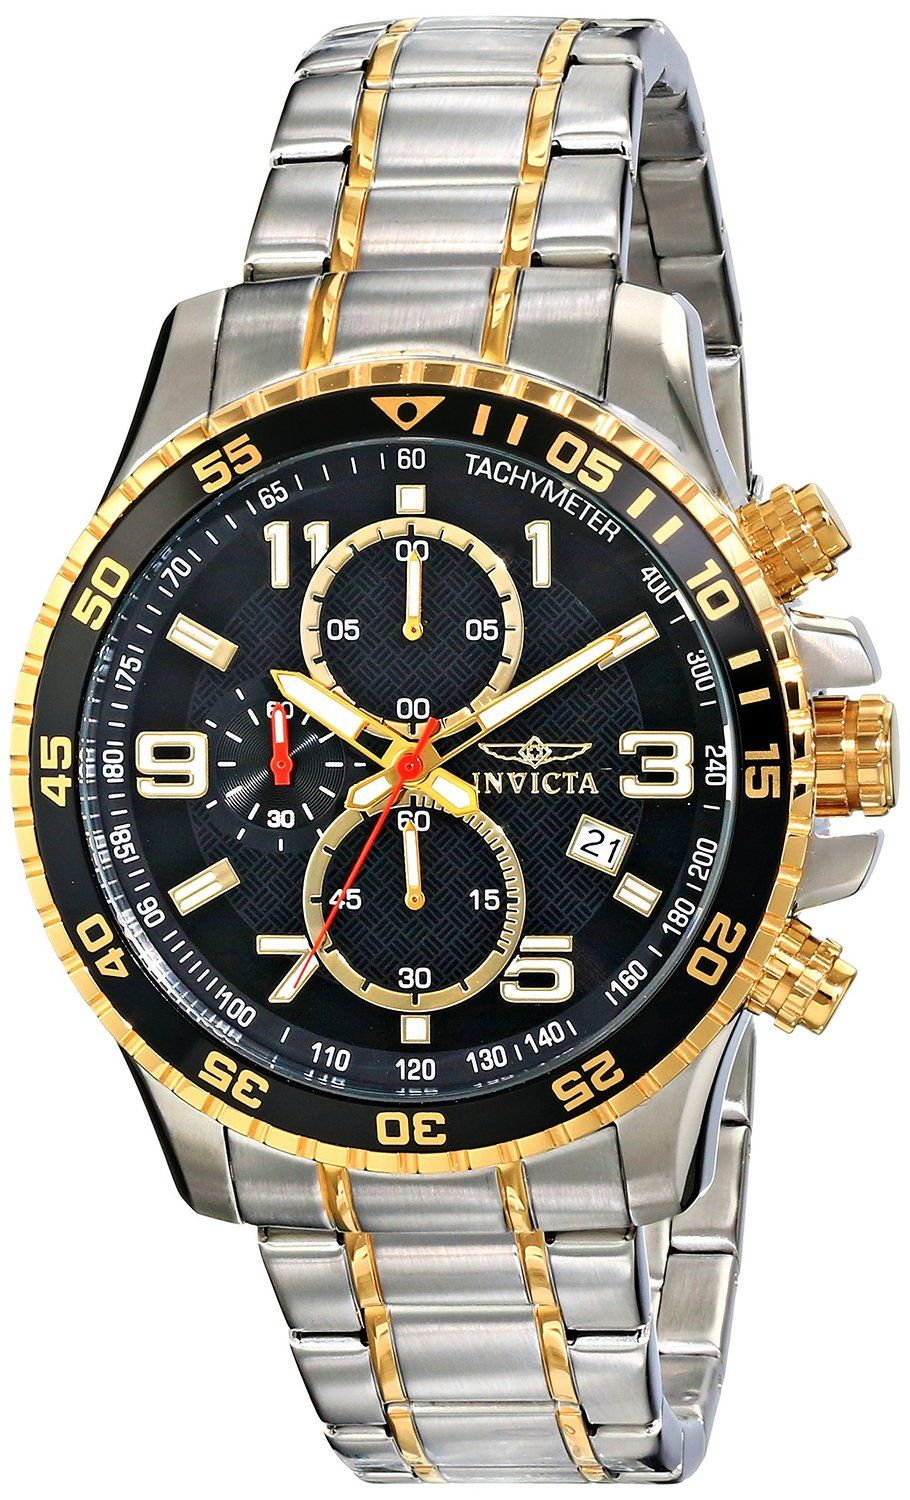 Invicta menus specialty chronograph k gold ionplated and